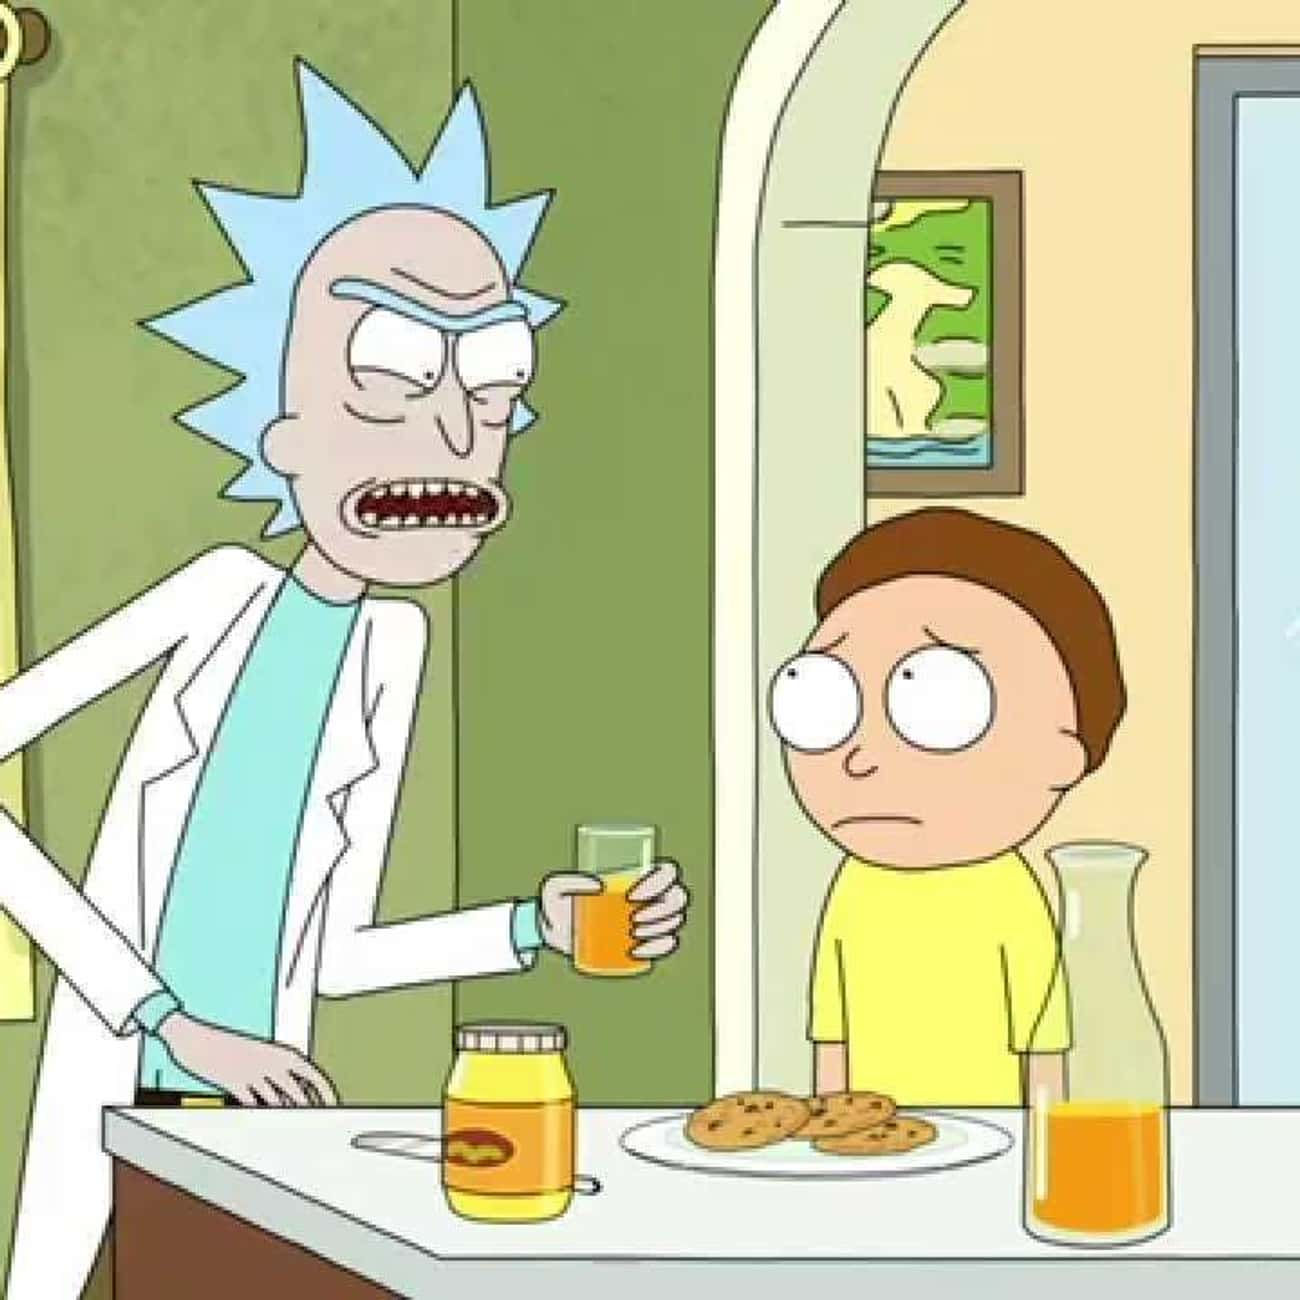 Rick's View on Love